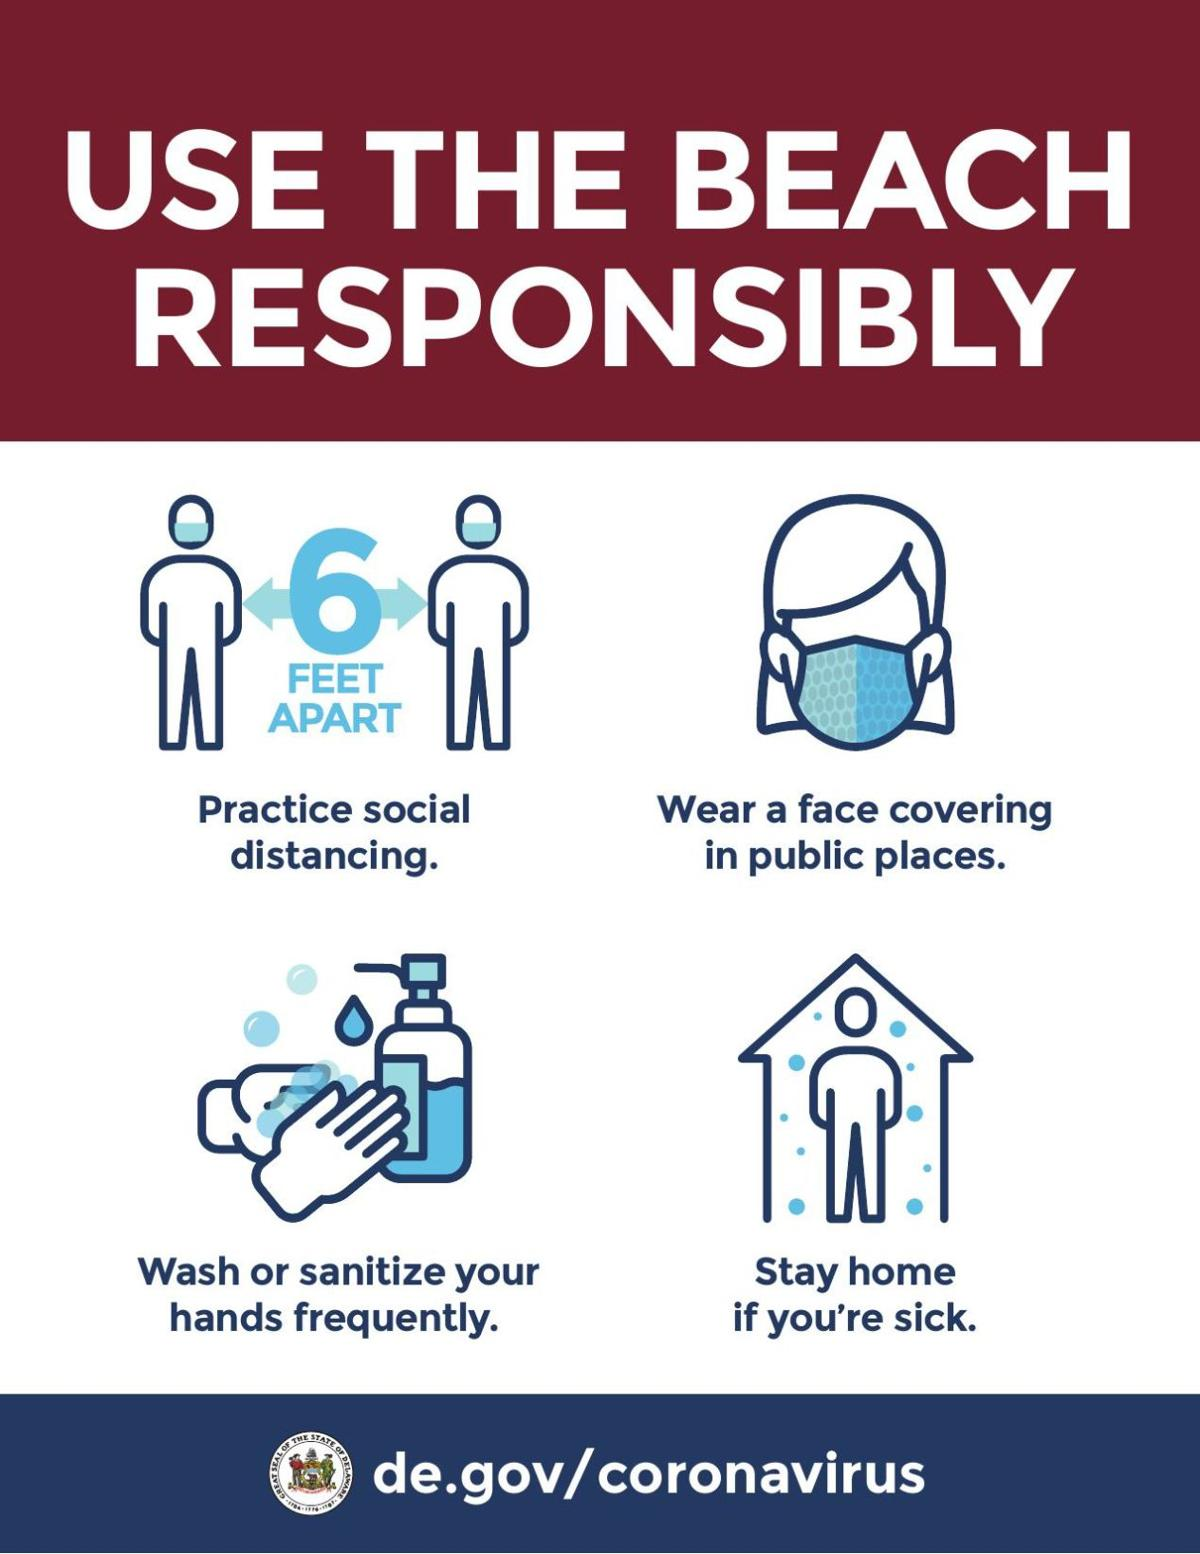 Use the Beach Responsibly Flyer: Beaches reopen during COVID-19